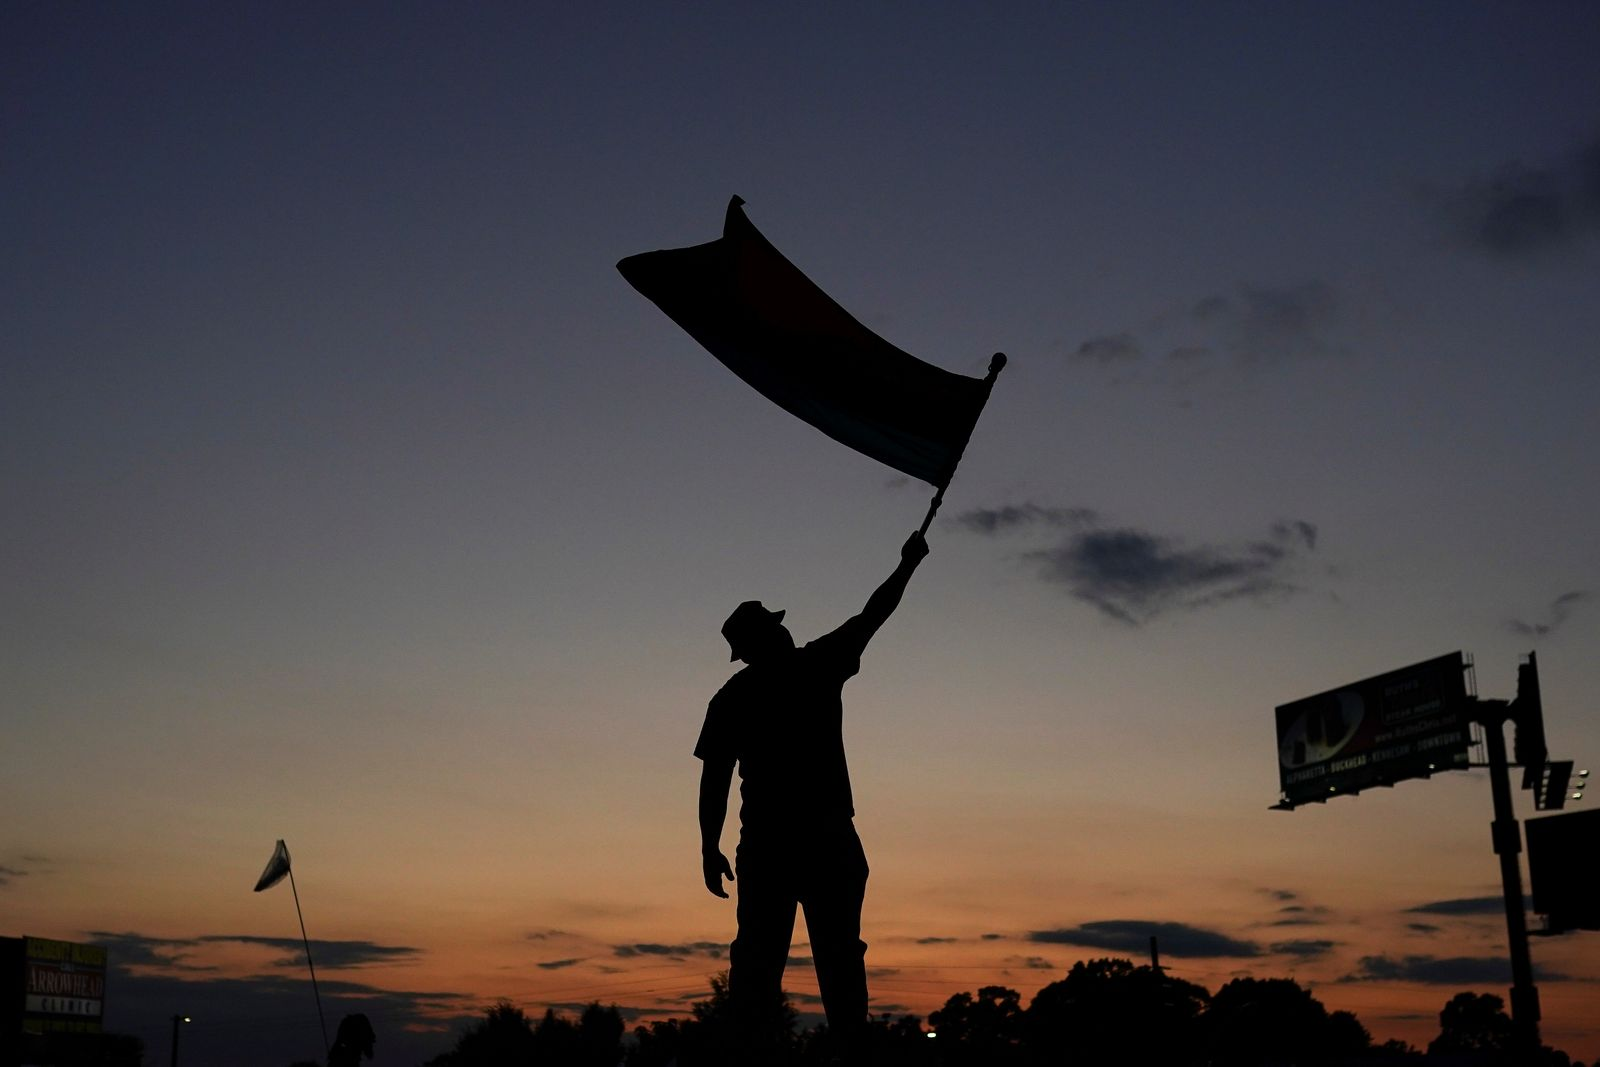 A protester is seen in silhouette waving a flag while blocking traffic on a freeway during a rally against racial inequality and the police shooting death of Rayshard Brooks, in Atlanta